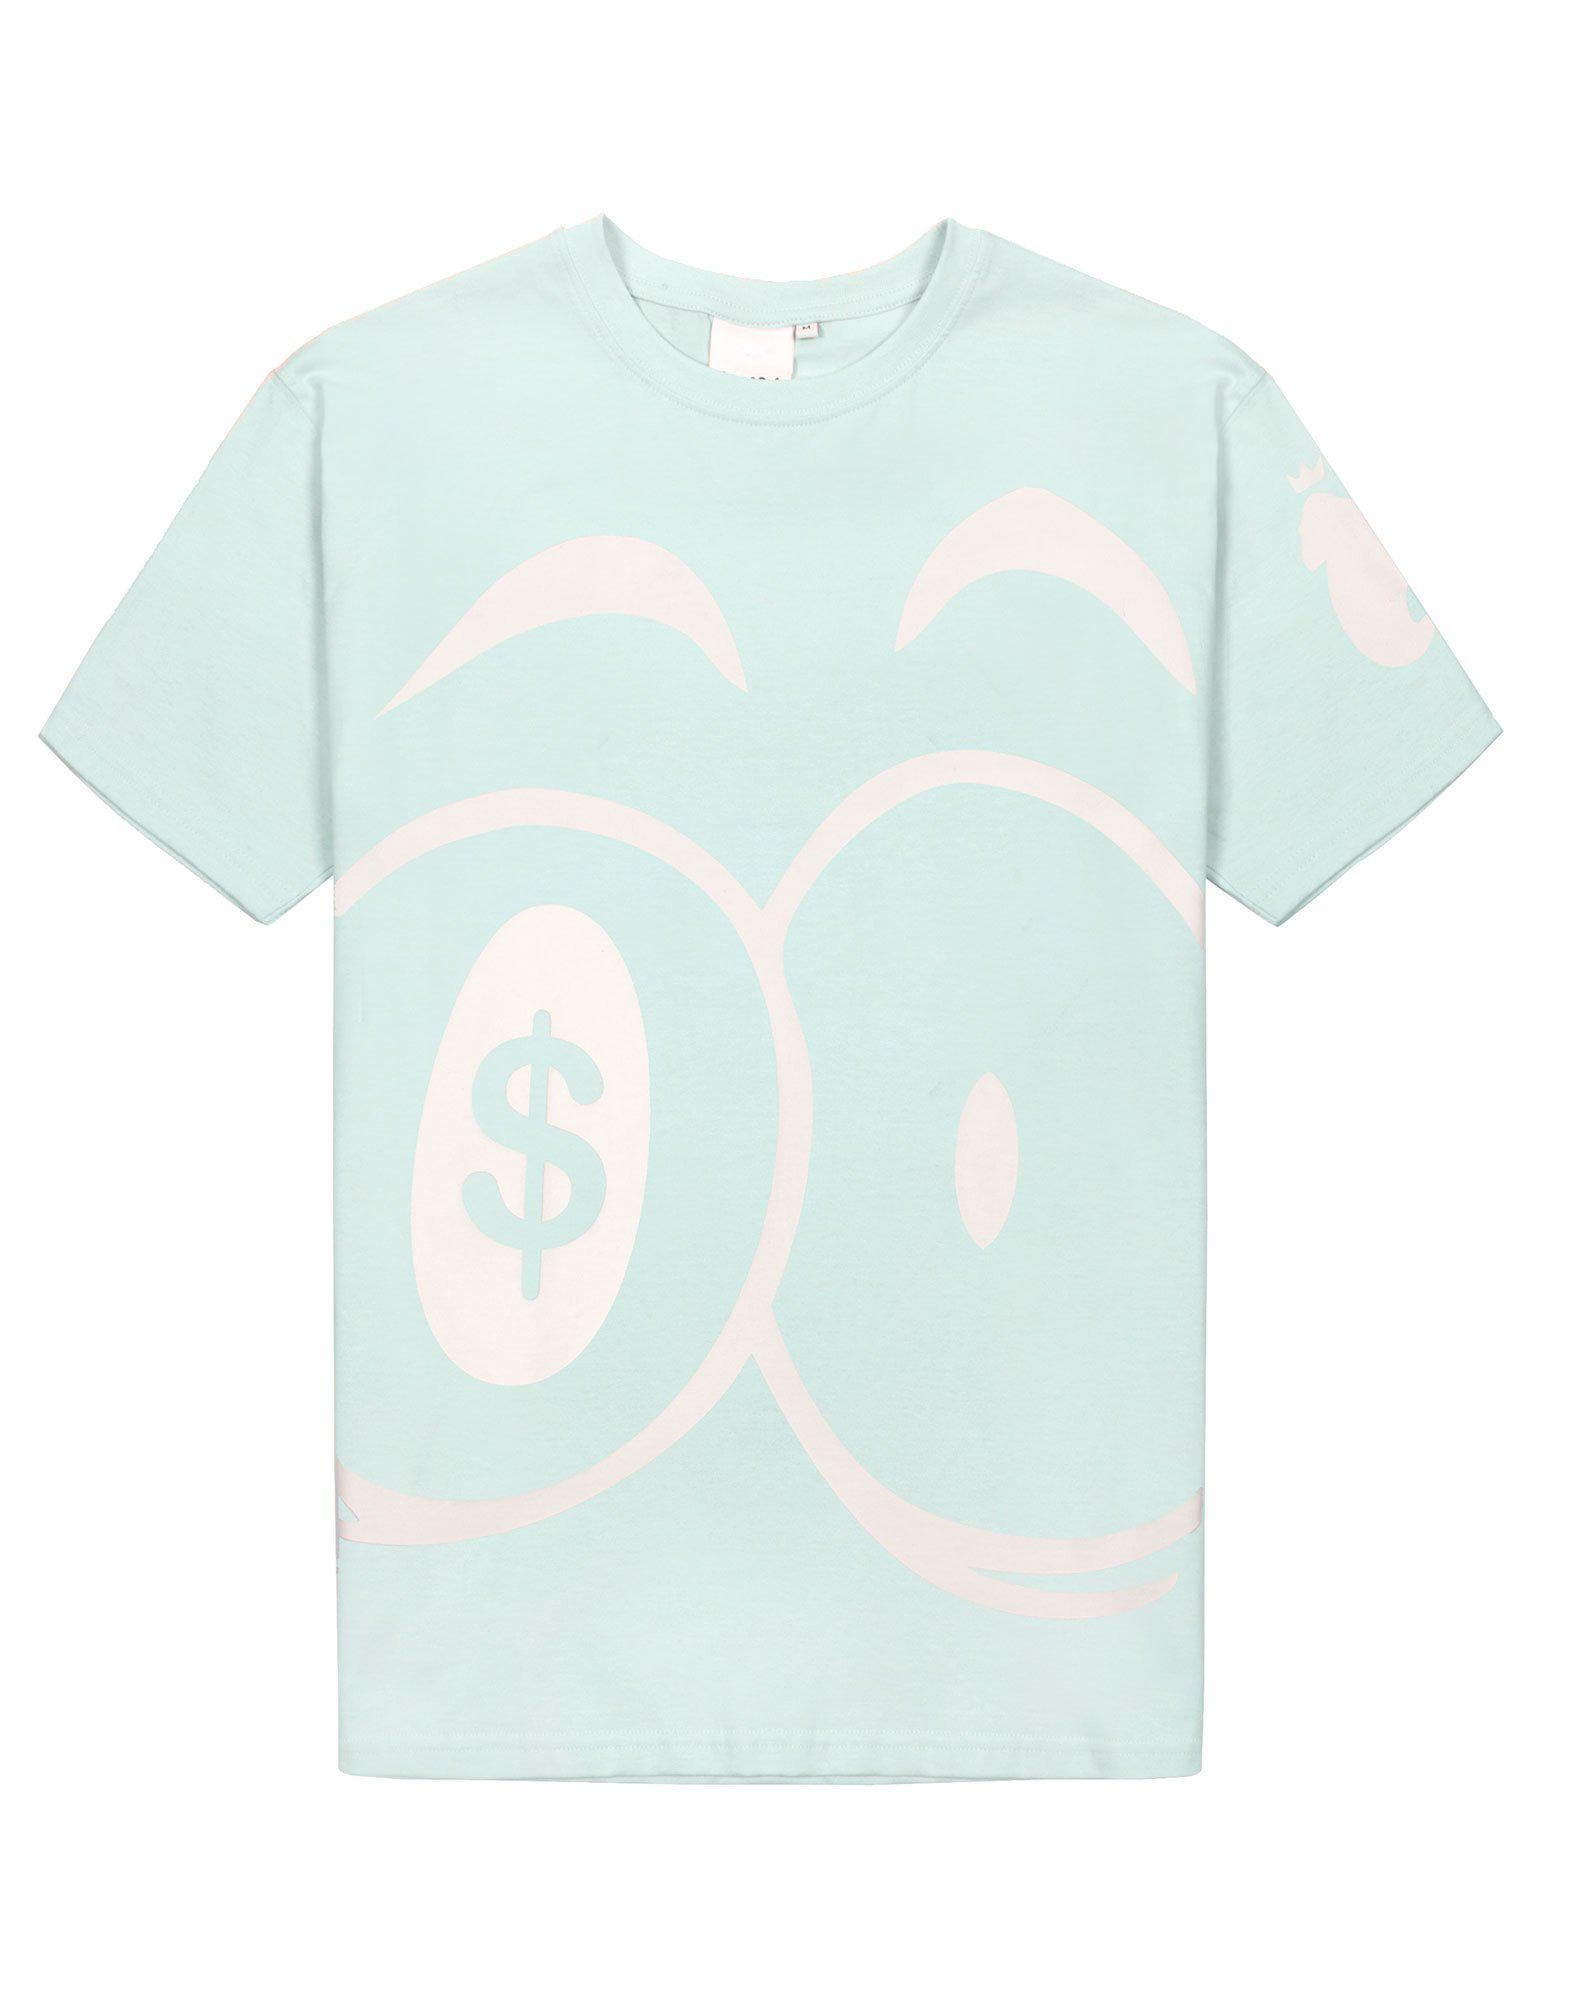 Money Clothing Filthy Tee